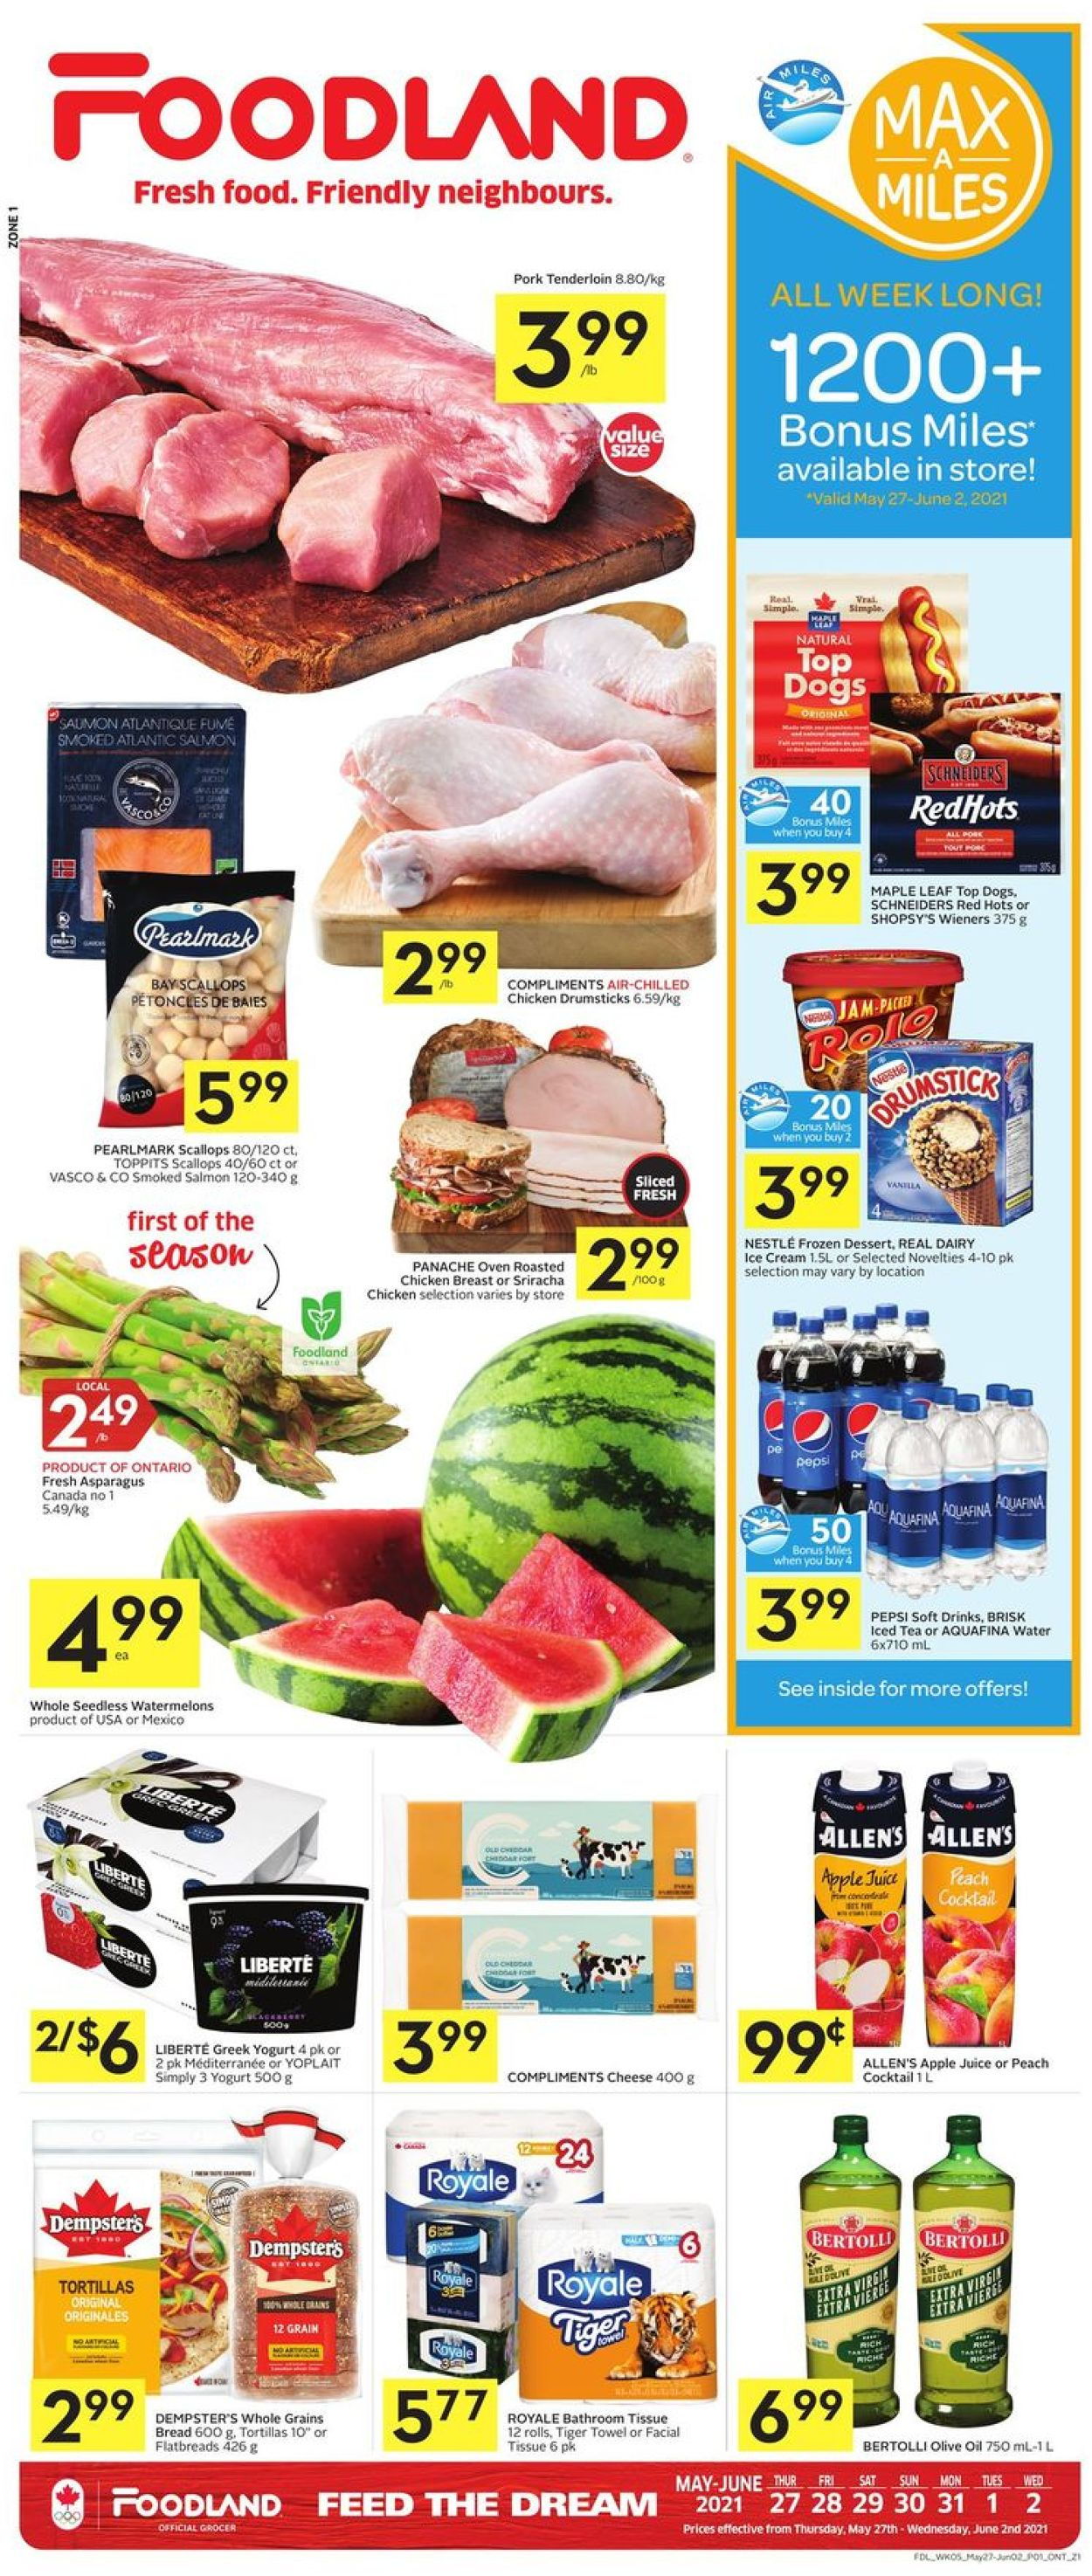 Foodland Flyer - 05/27-06/02/2021 (Page 3)